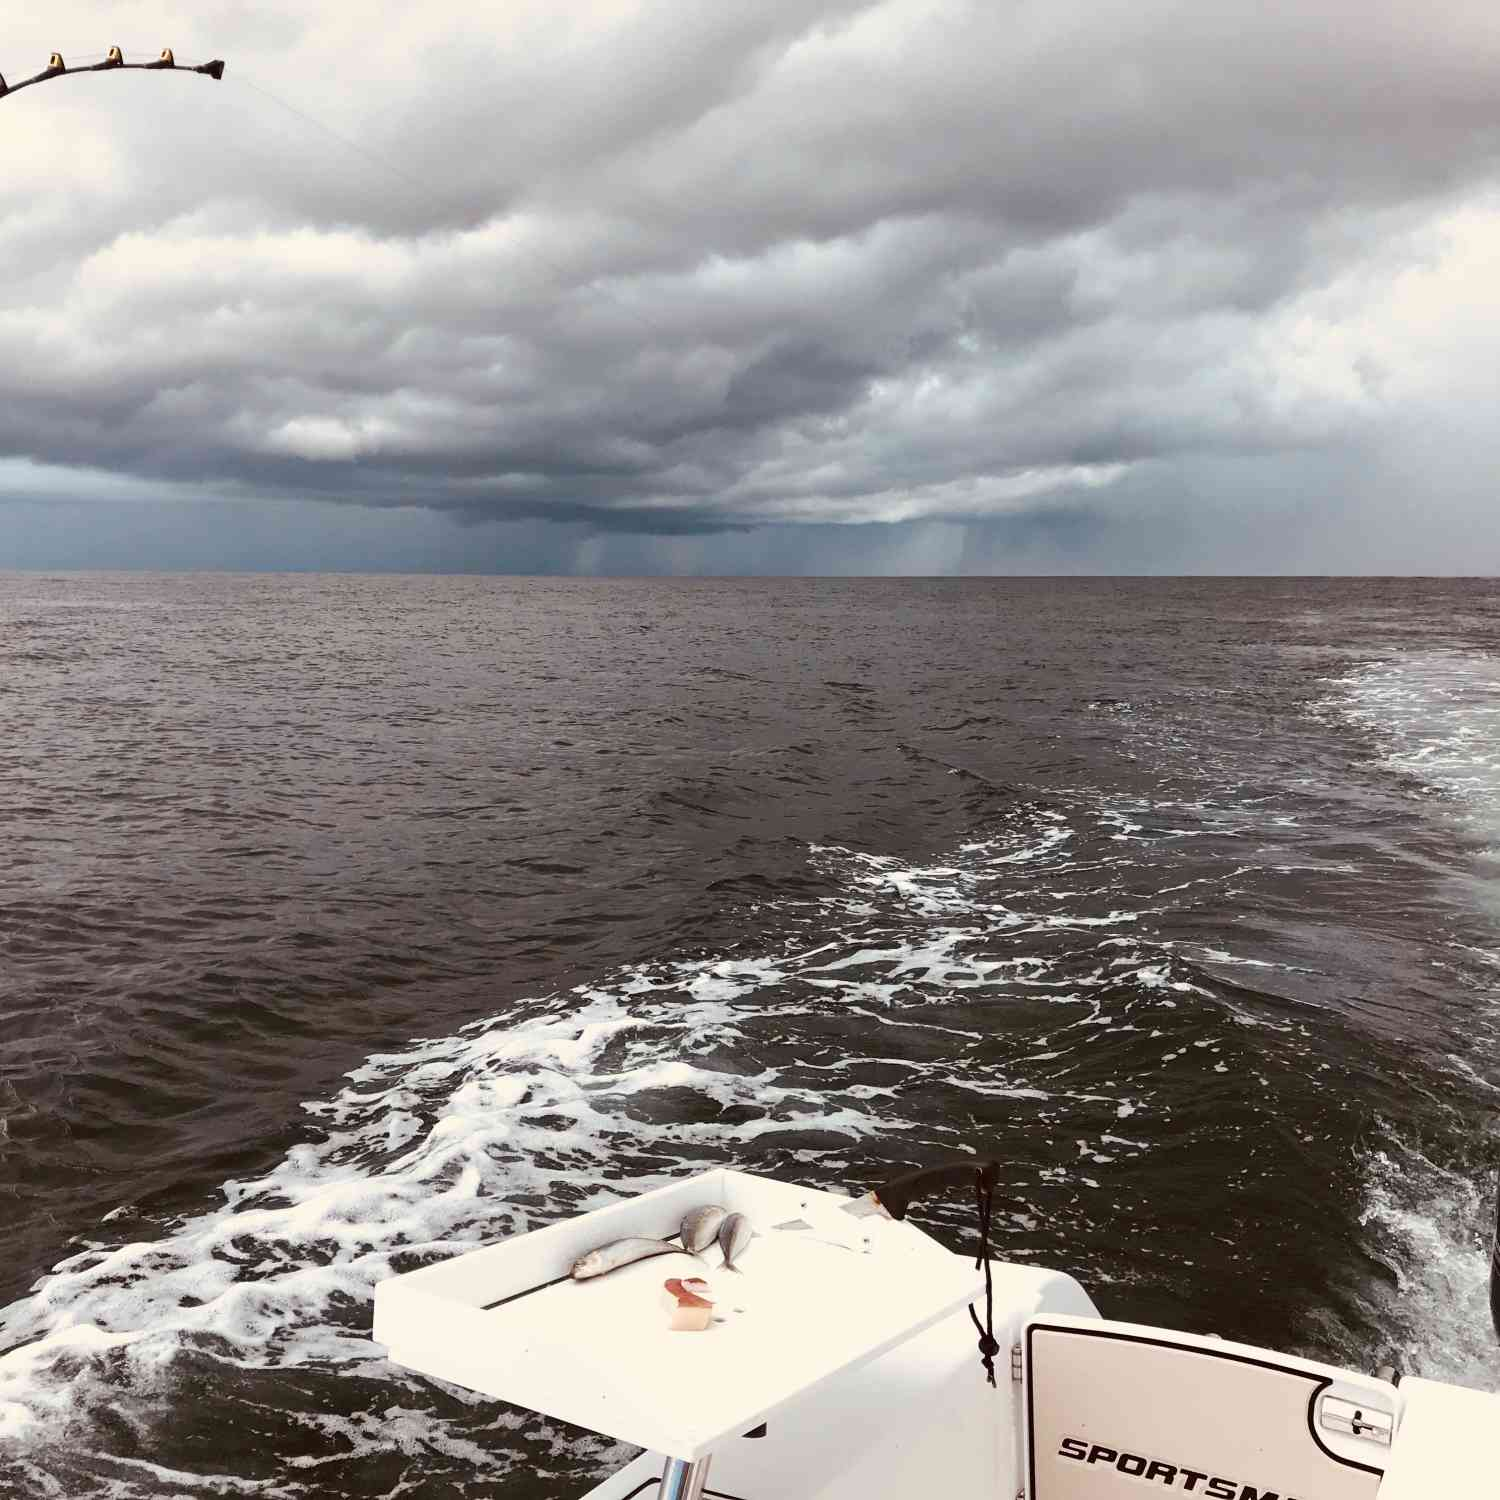 Title: Systems colliding - On board their Sportsman Open 252 Center Console - Location: Destin, Florida. Participating in the Photo Contest #SportsmanJanuary2020